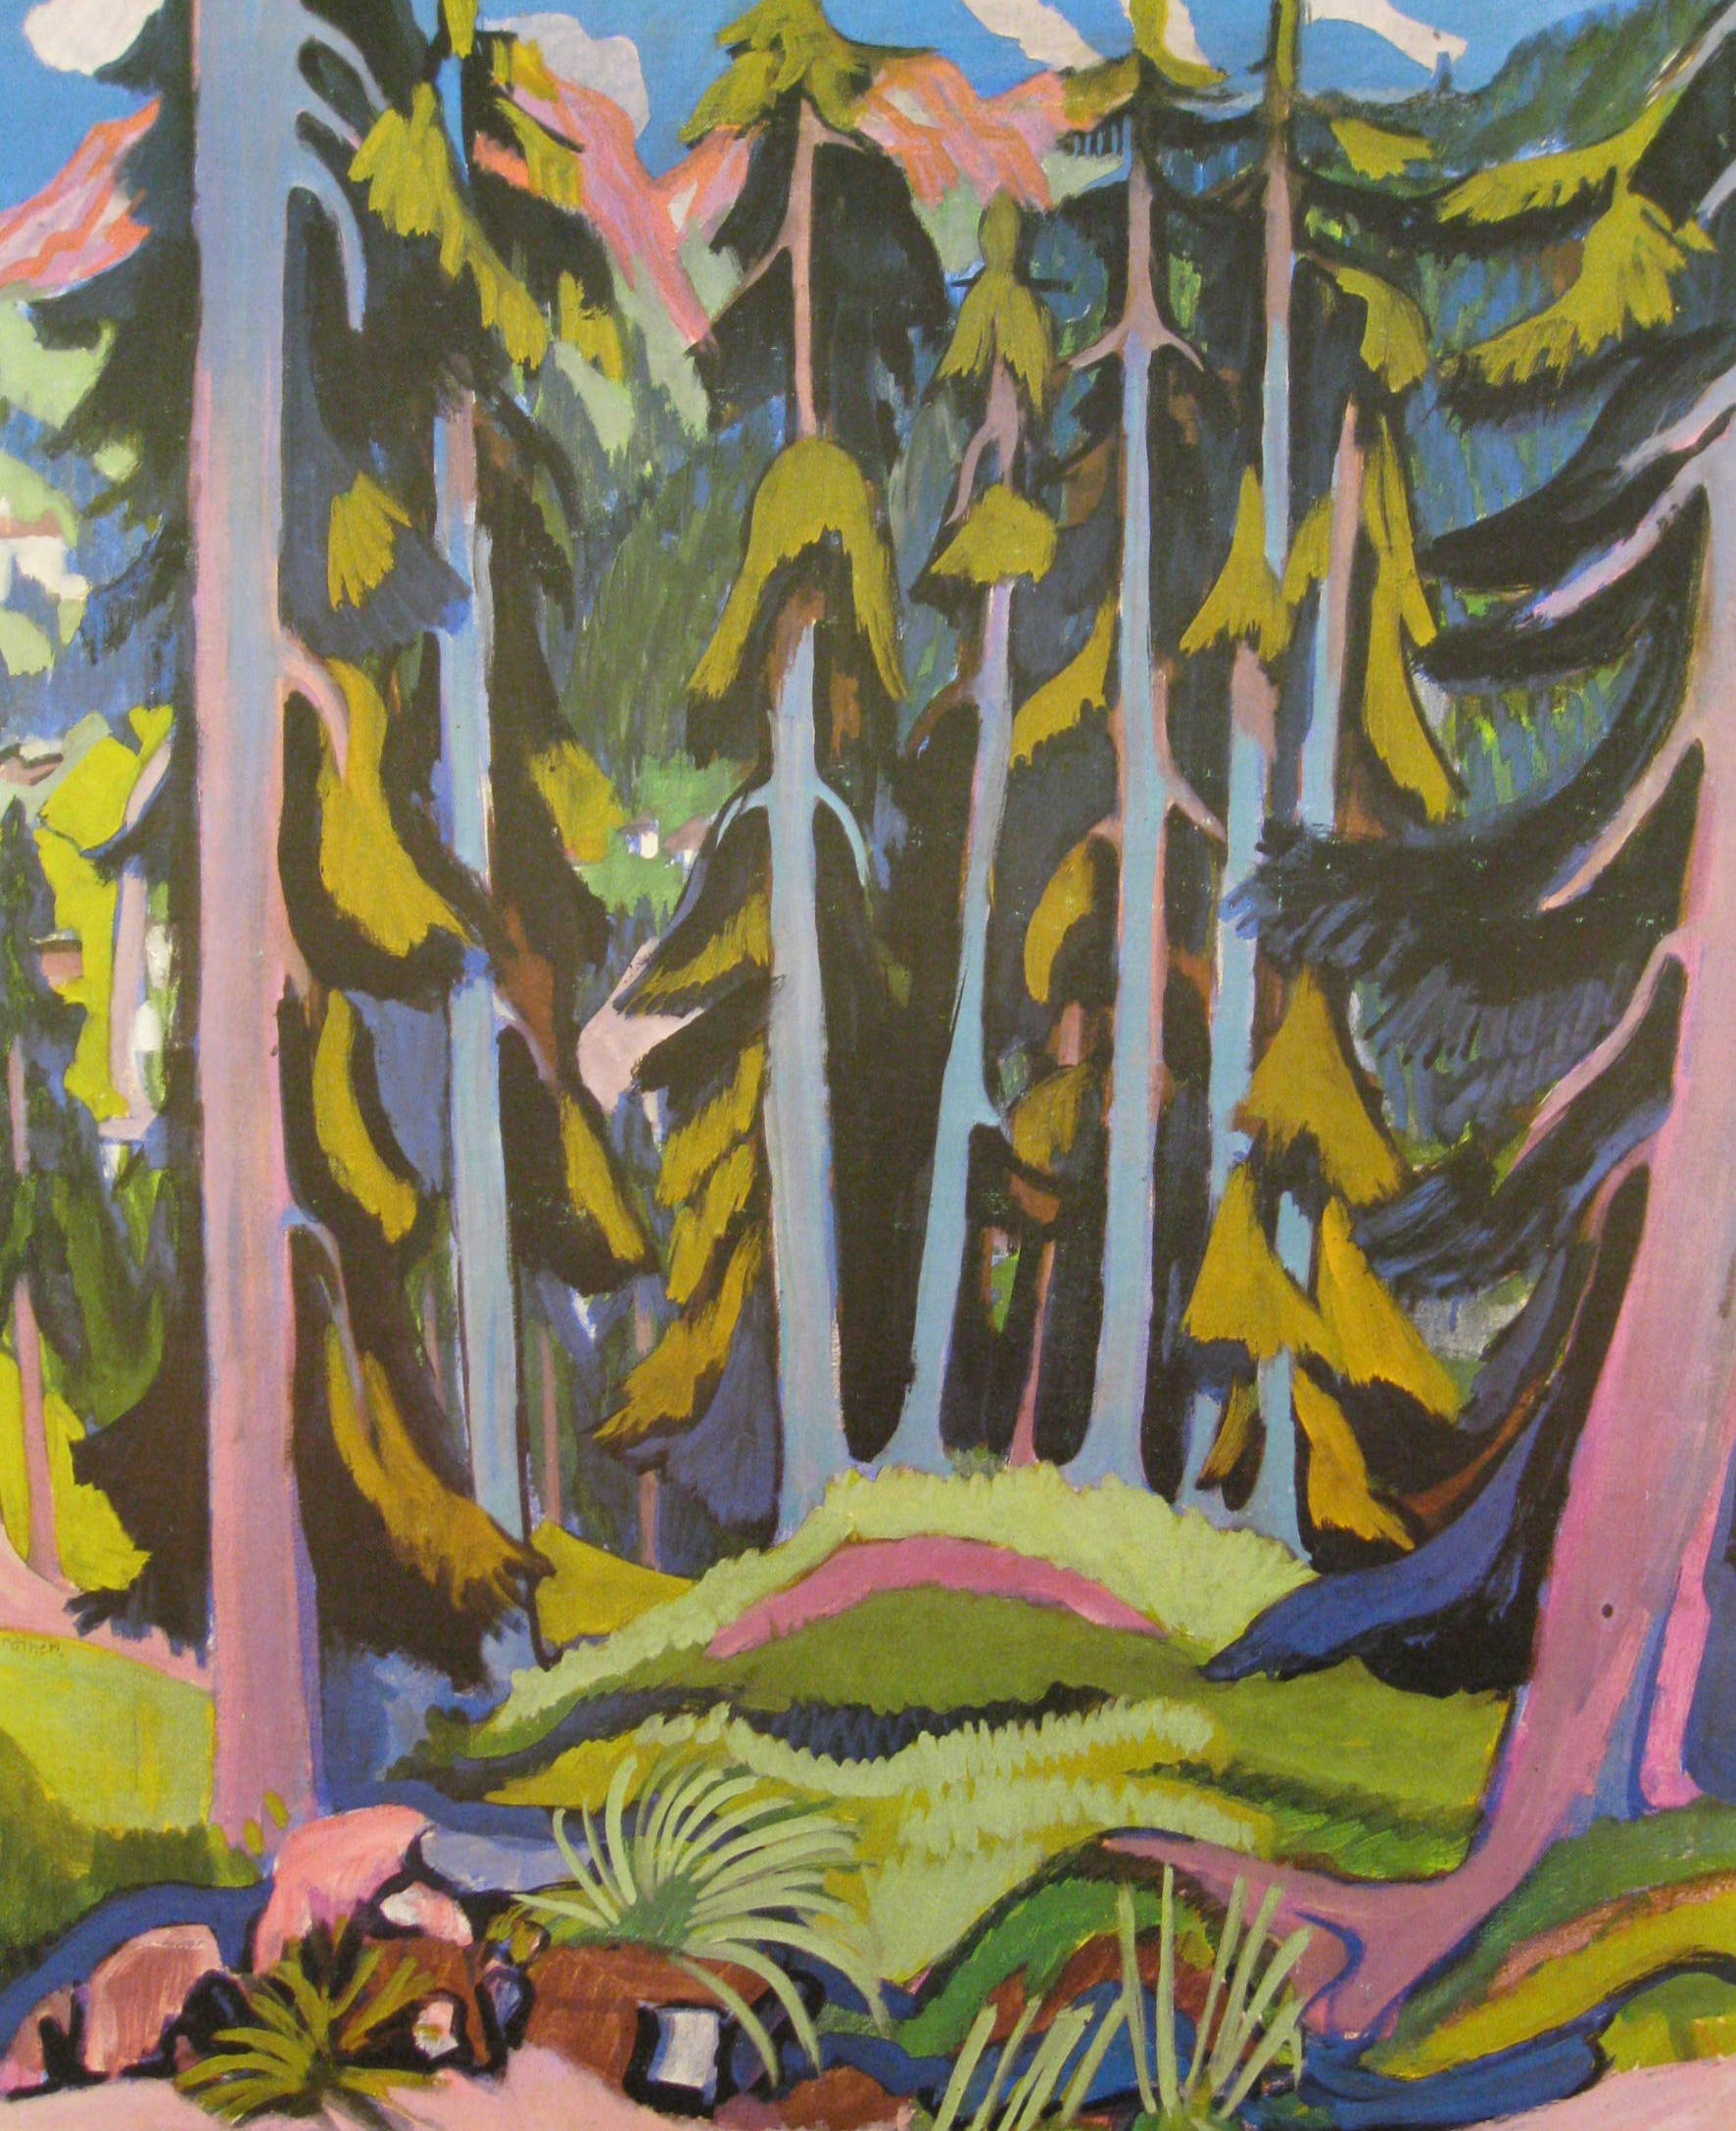 Love Images Between Brother And Sister · Heart Internal Organ ...Famous Forest Paintings